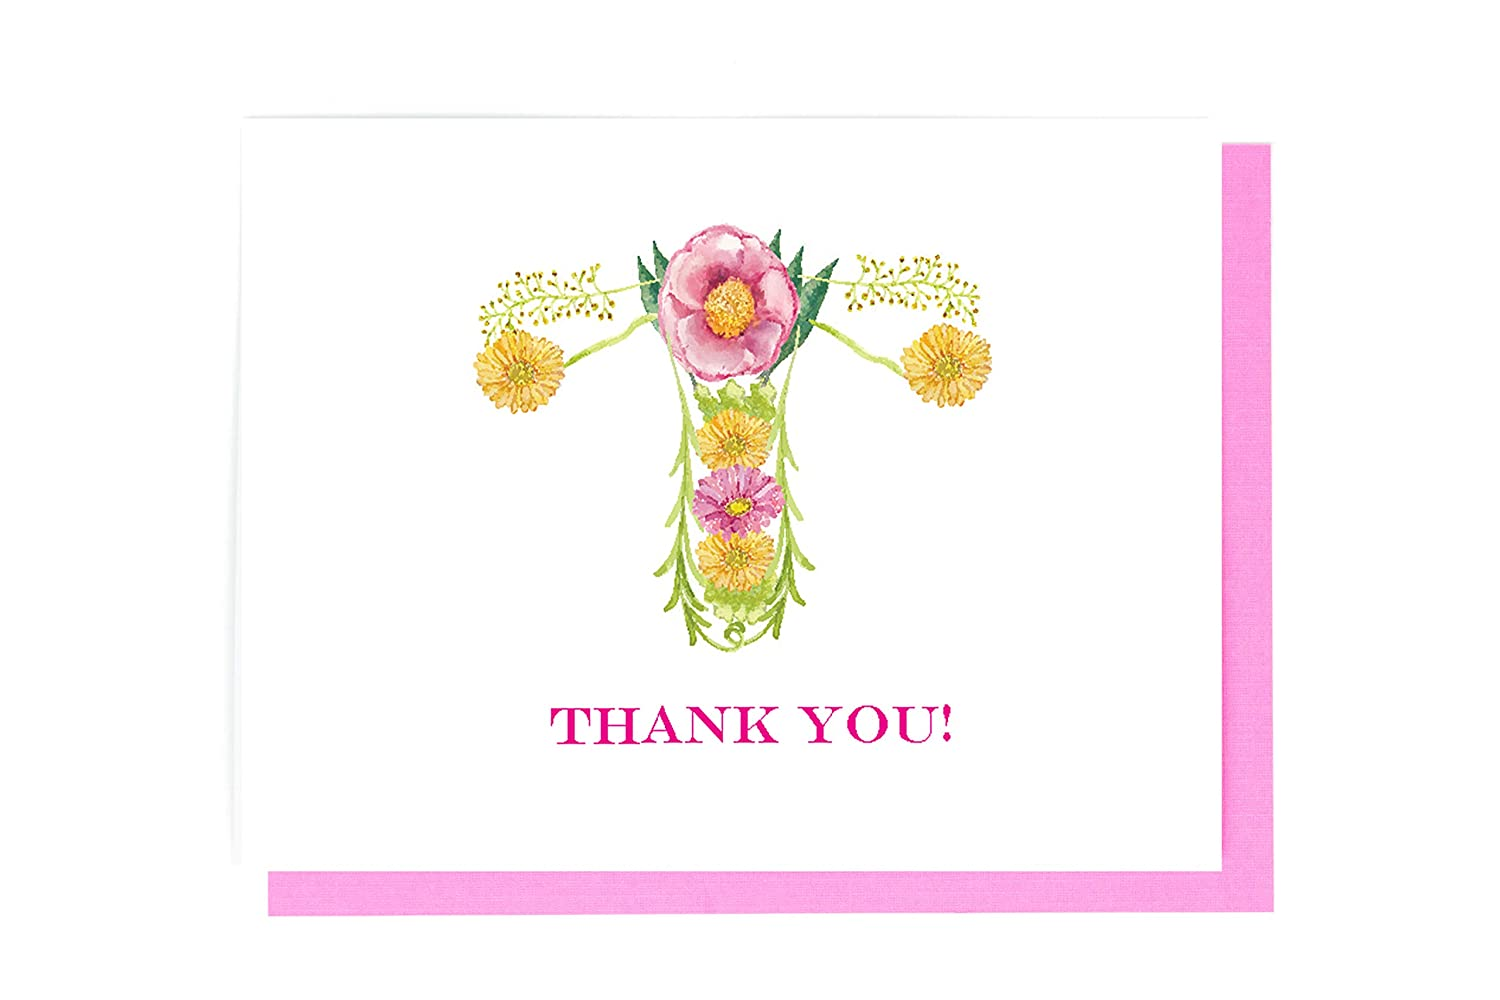 Uterus Anatomy OBGYN Midwife Medical Doctor Nurse Thank You Card